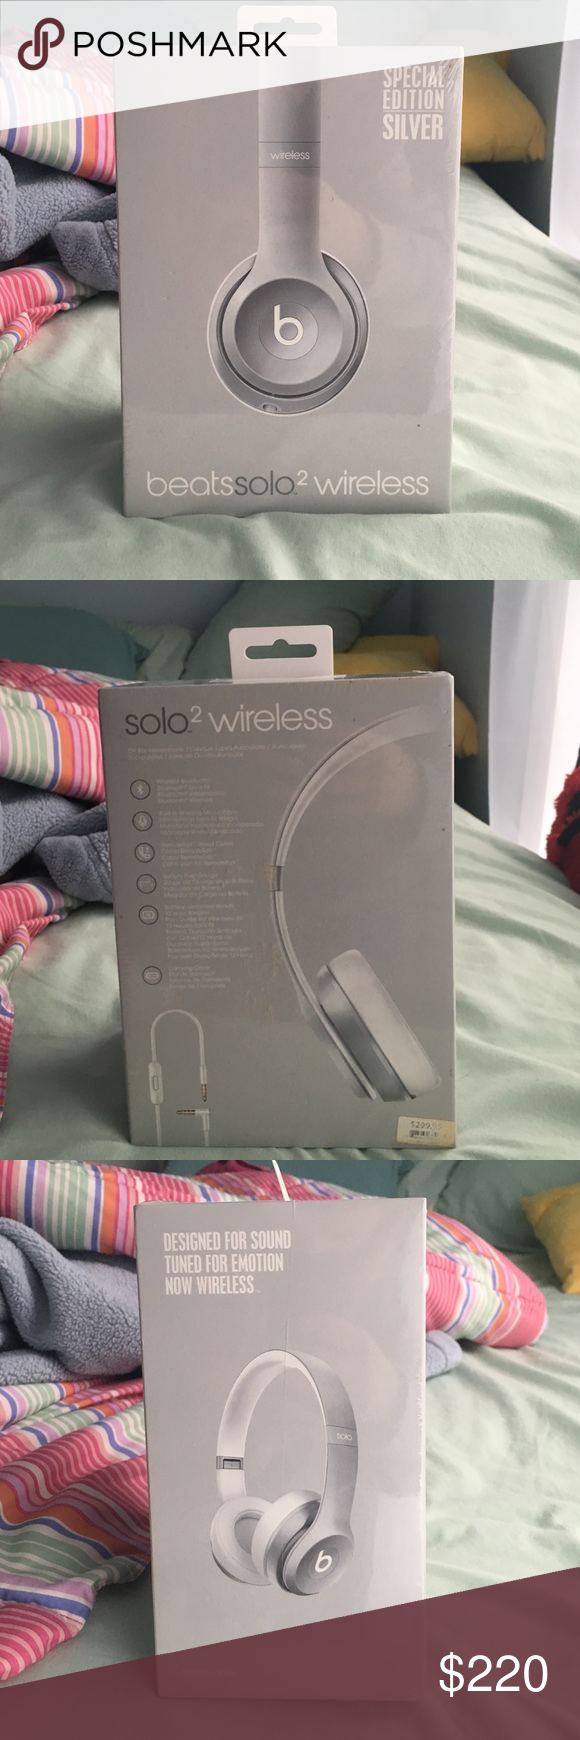 Beats Wireless Headphones Beats solo 2 wireless headphones, silver color, never been opened still in wrapping!!! Excellent condition!!! (Lululemon tag for picture quality) lululemon athletica Other